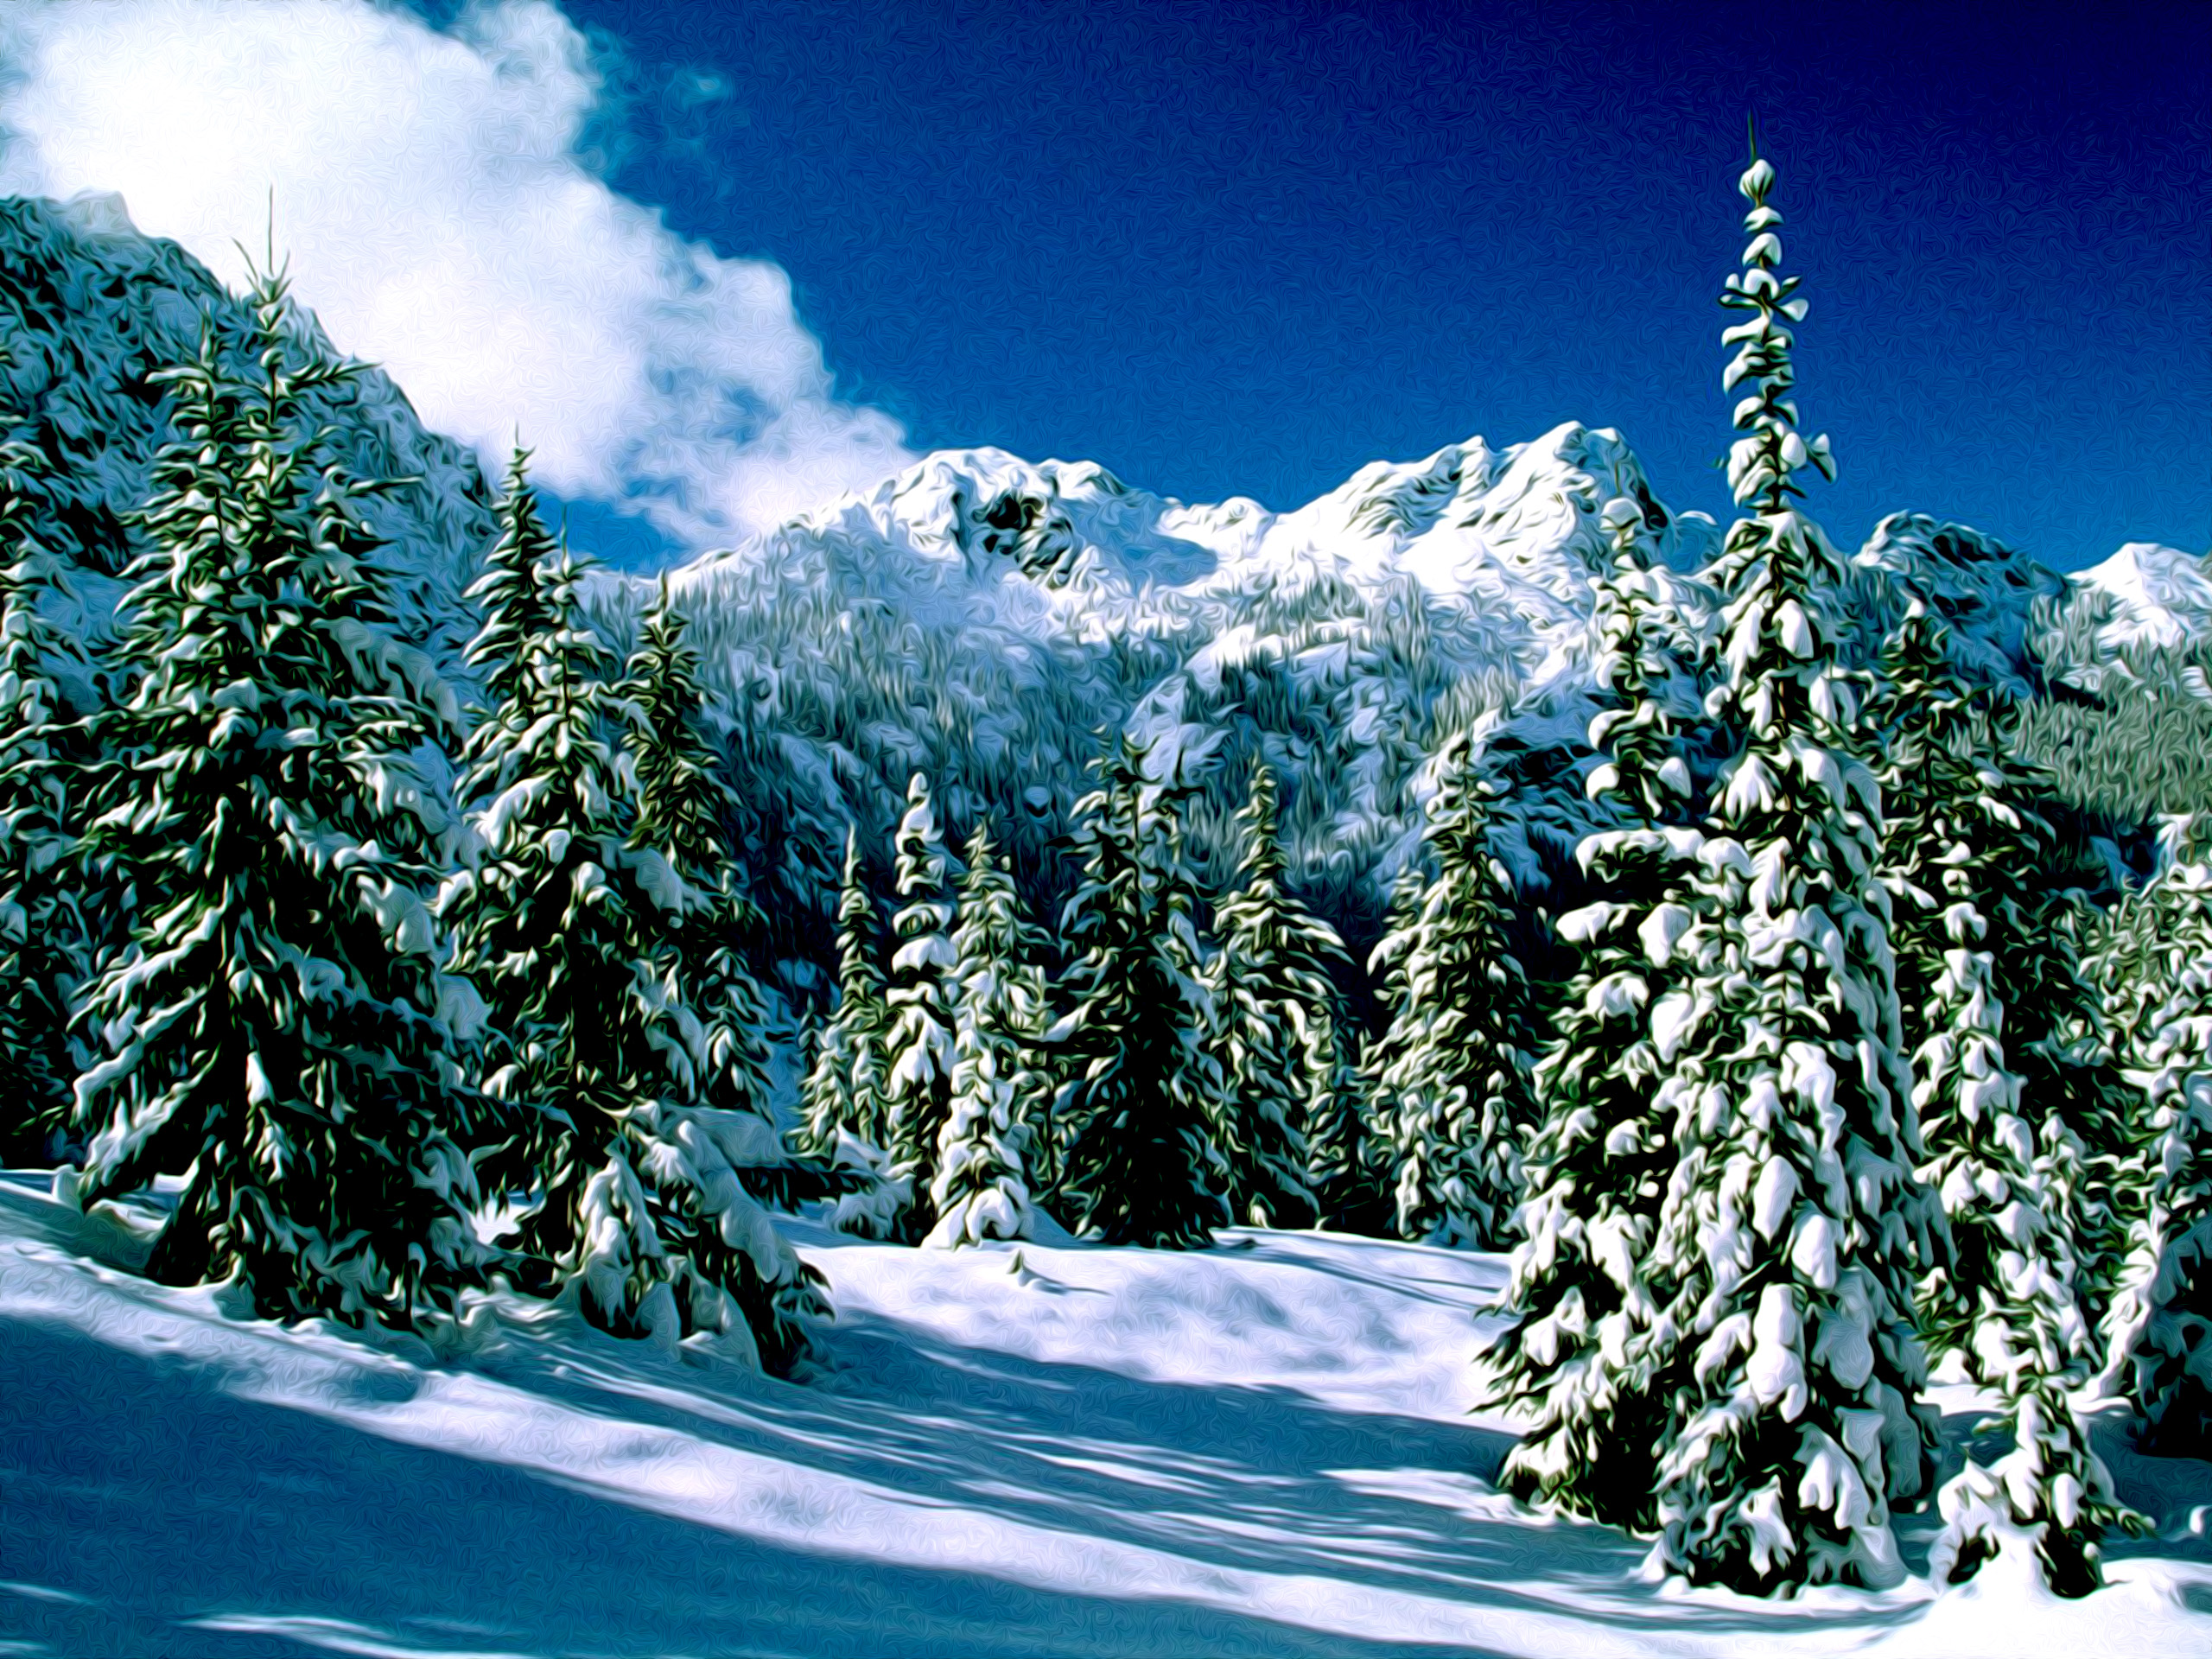 Winter Nature Snow Scene Desktop Wallpapers for Widescreen HD 2560x1920